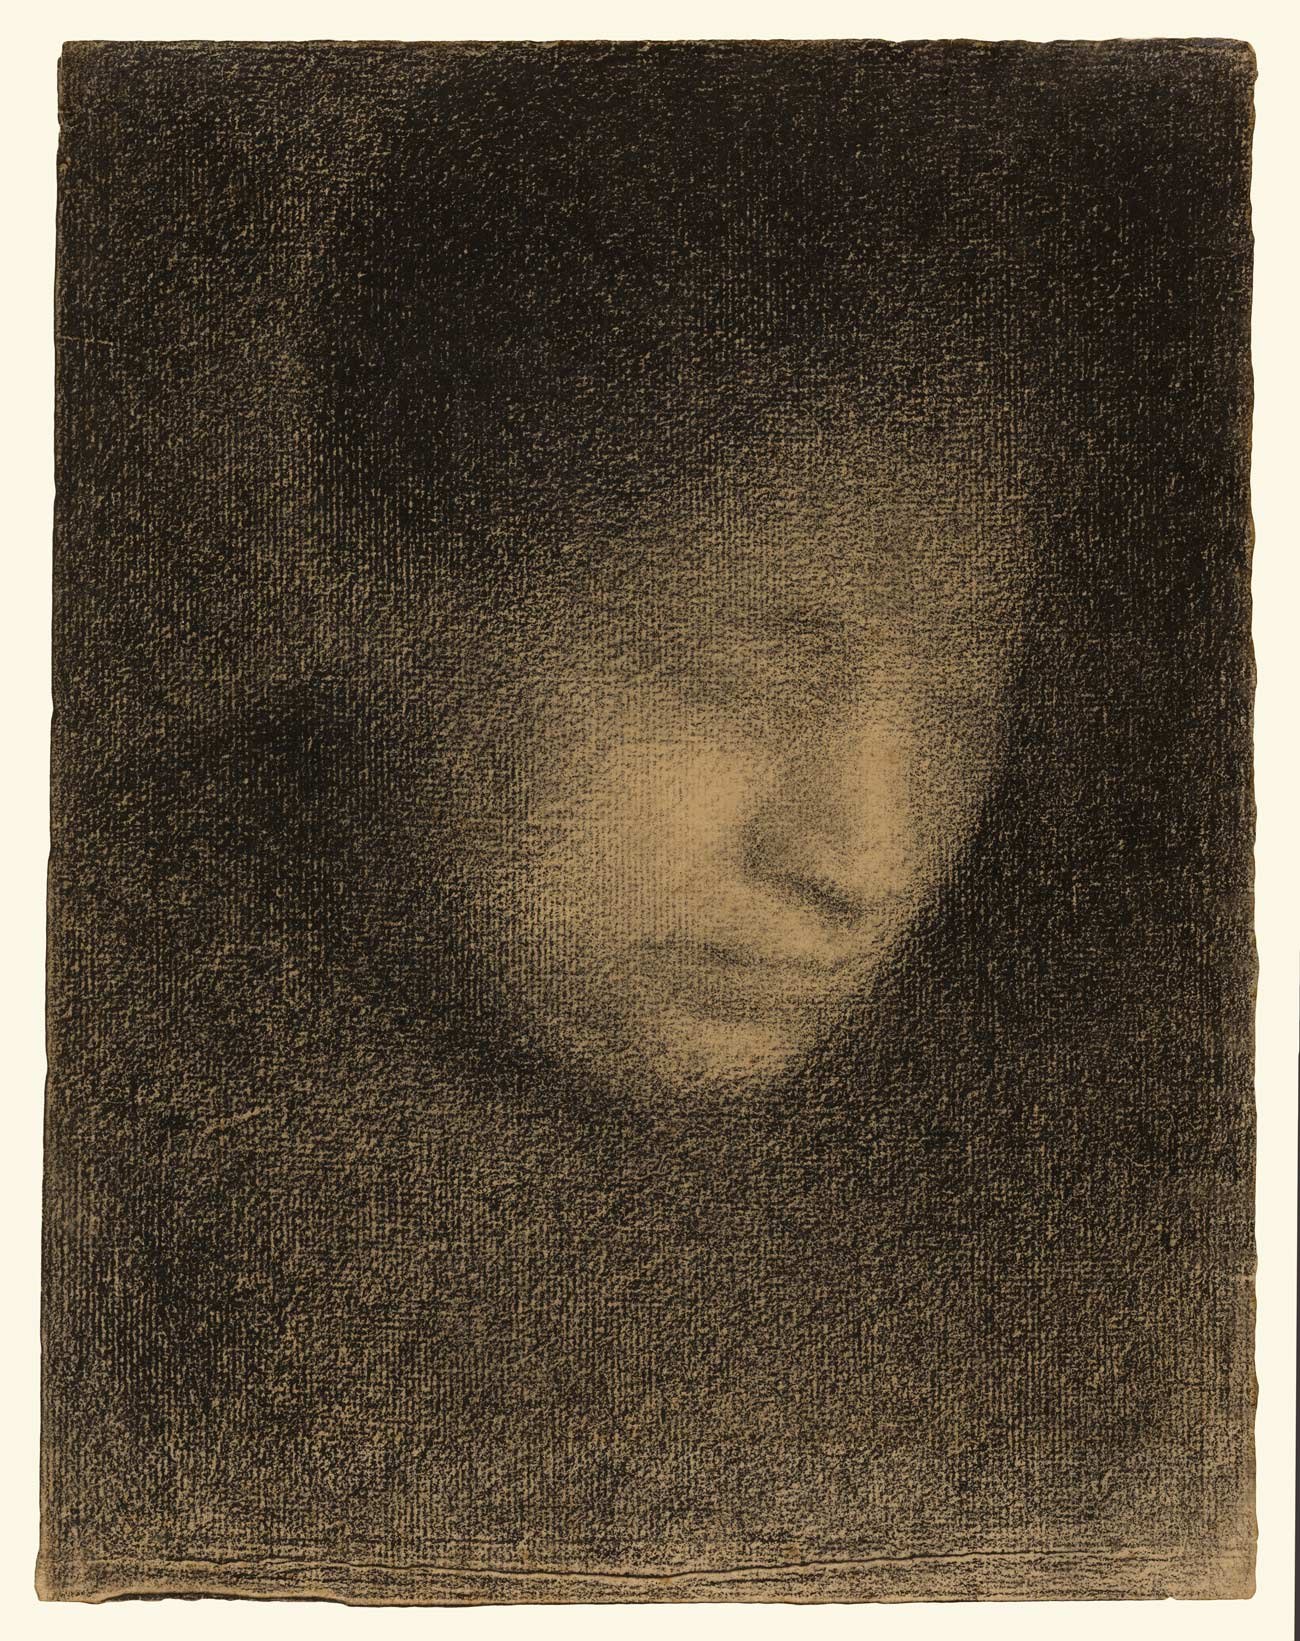 Grainy, dark image of a woman's facing looking down and to the right.